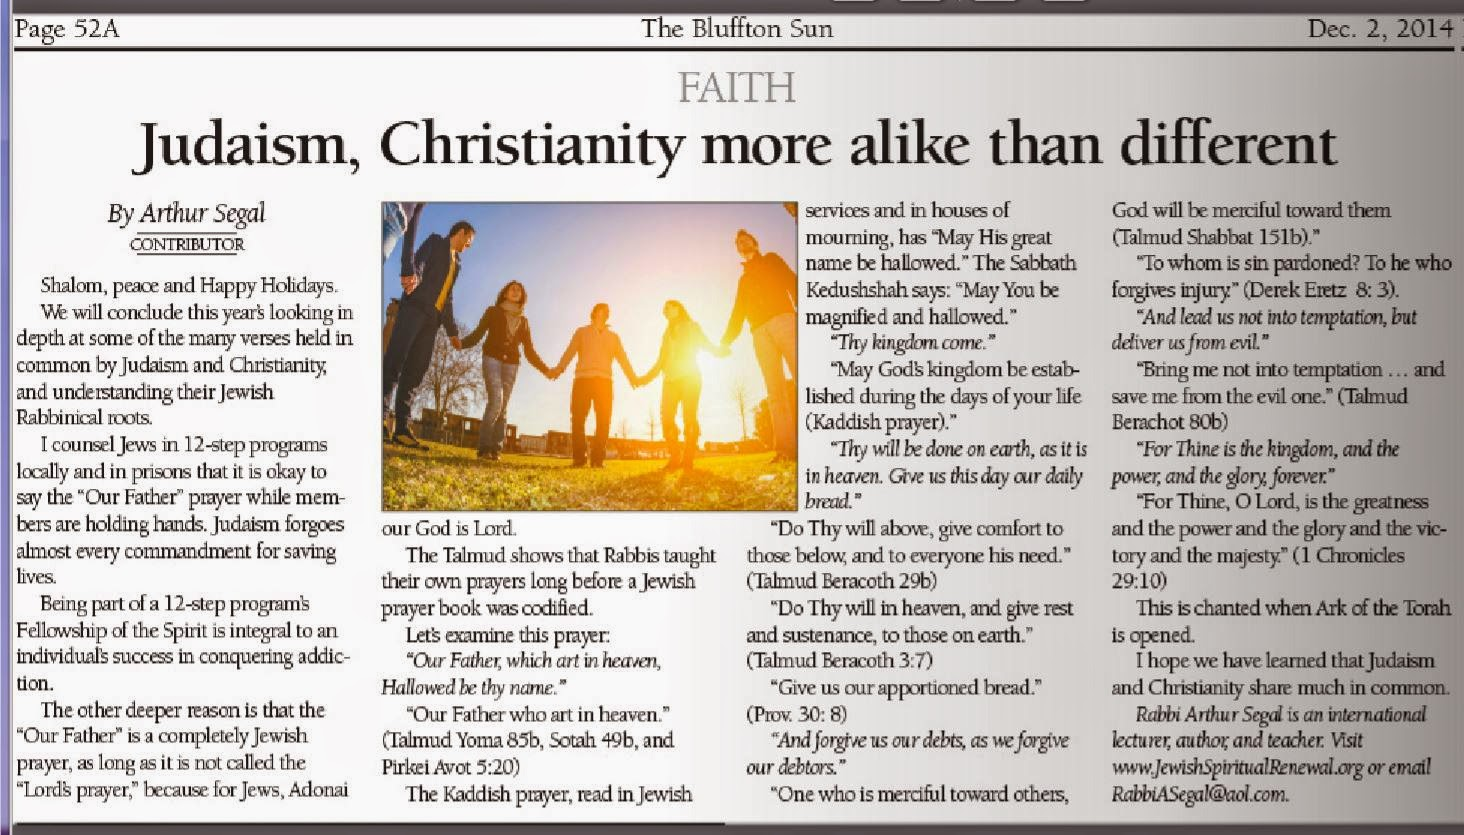 christianity and judaism alike and different Torah, bible, god - similarities between christianity and judaism.